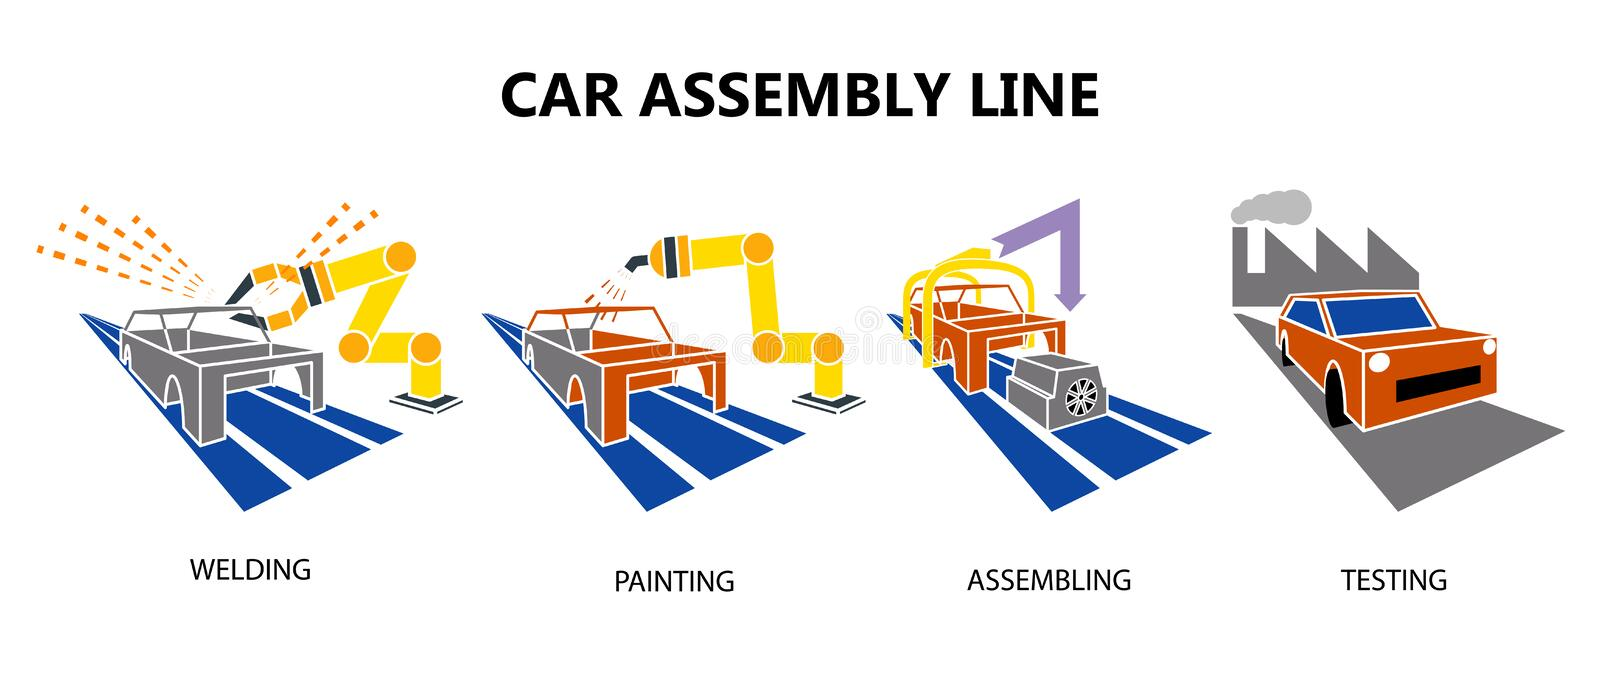 Car conveyor assembly production line on factory icons. vector illustration